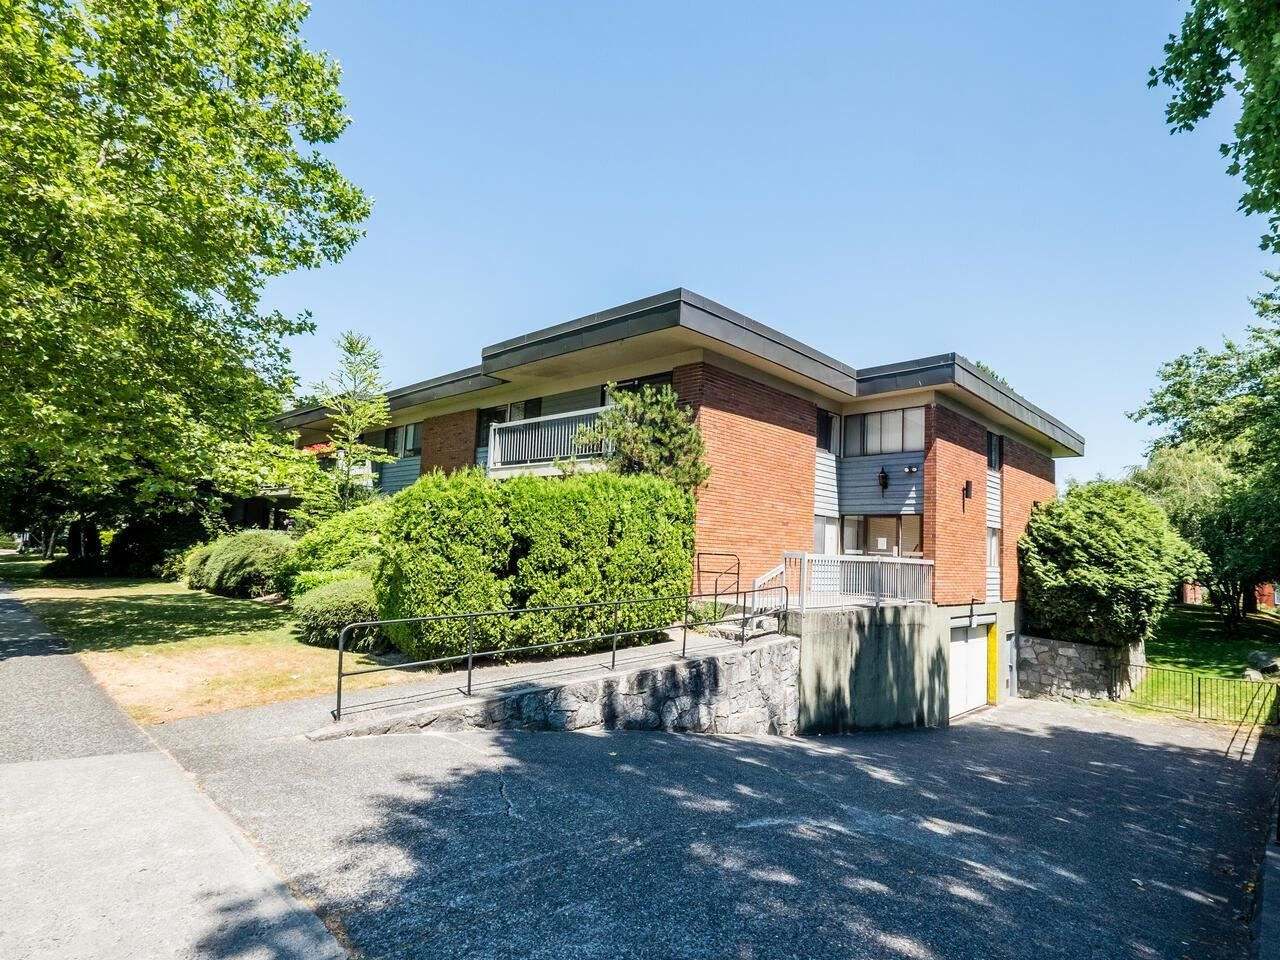 """Photo 2: Photos: 209 2600 E 49TH Avenue in Vancouver: Killarney VE Condo for sale in """"Southwinds"""" (Vancouver East)  : MLS®# R2600173"""